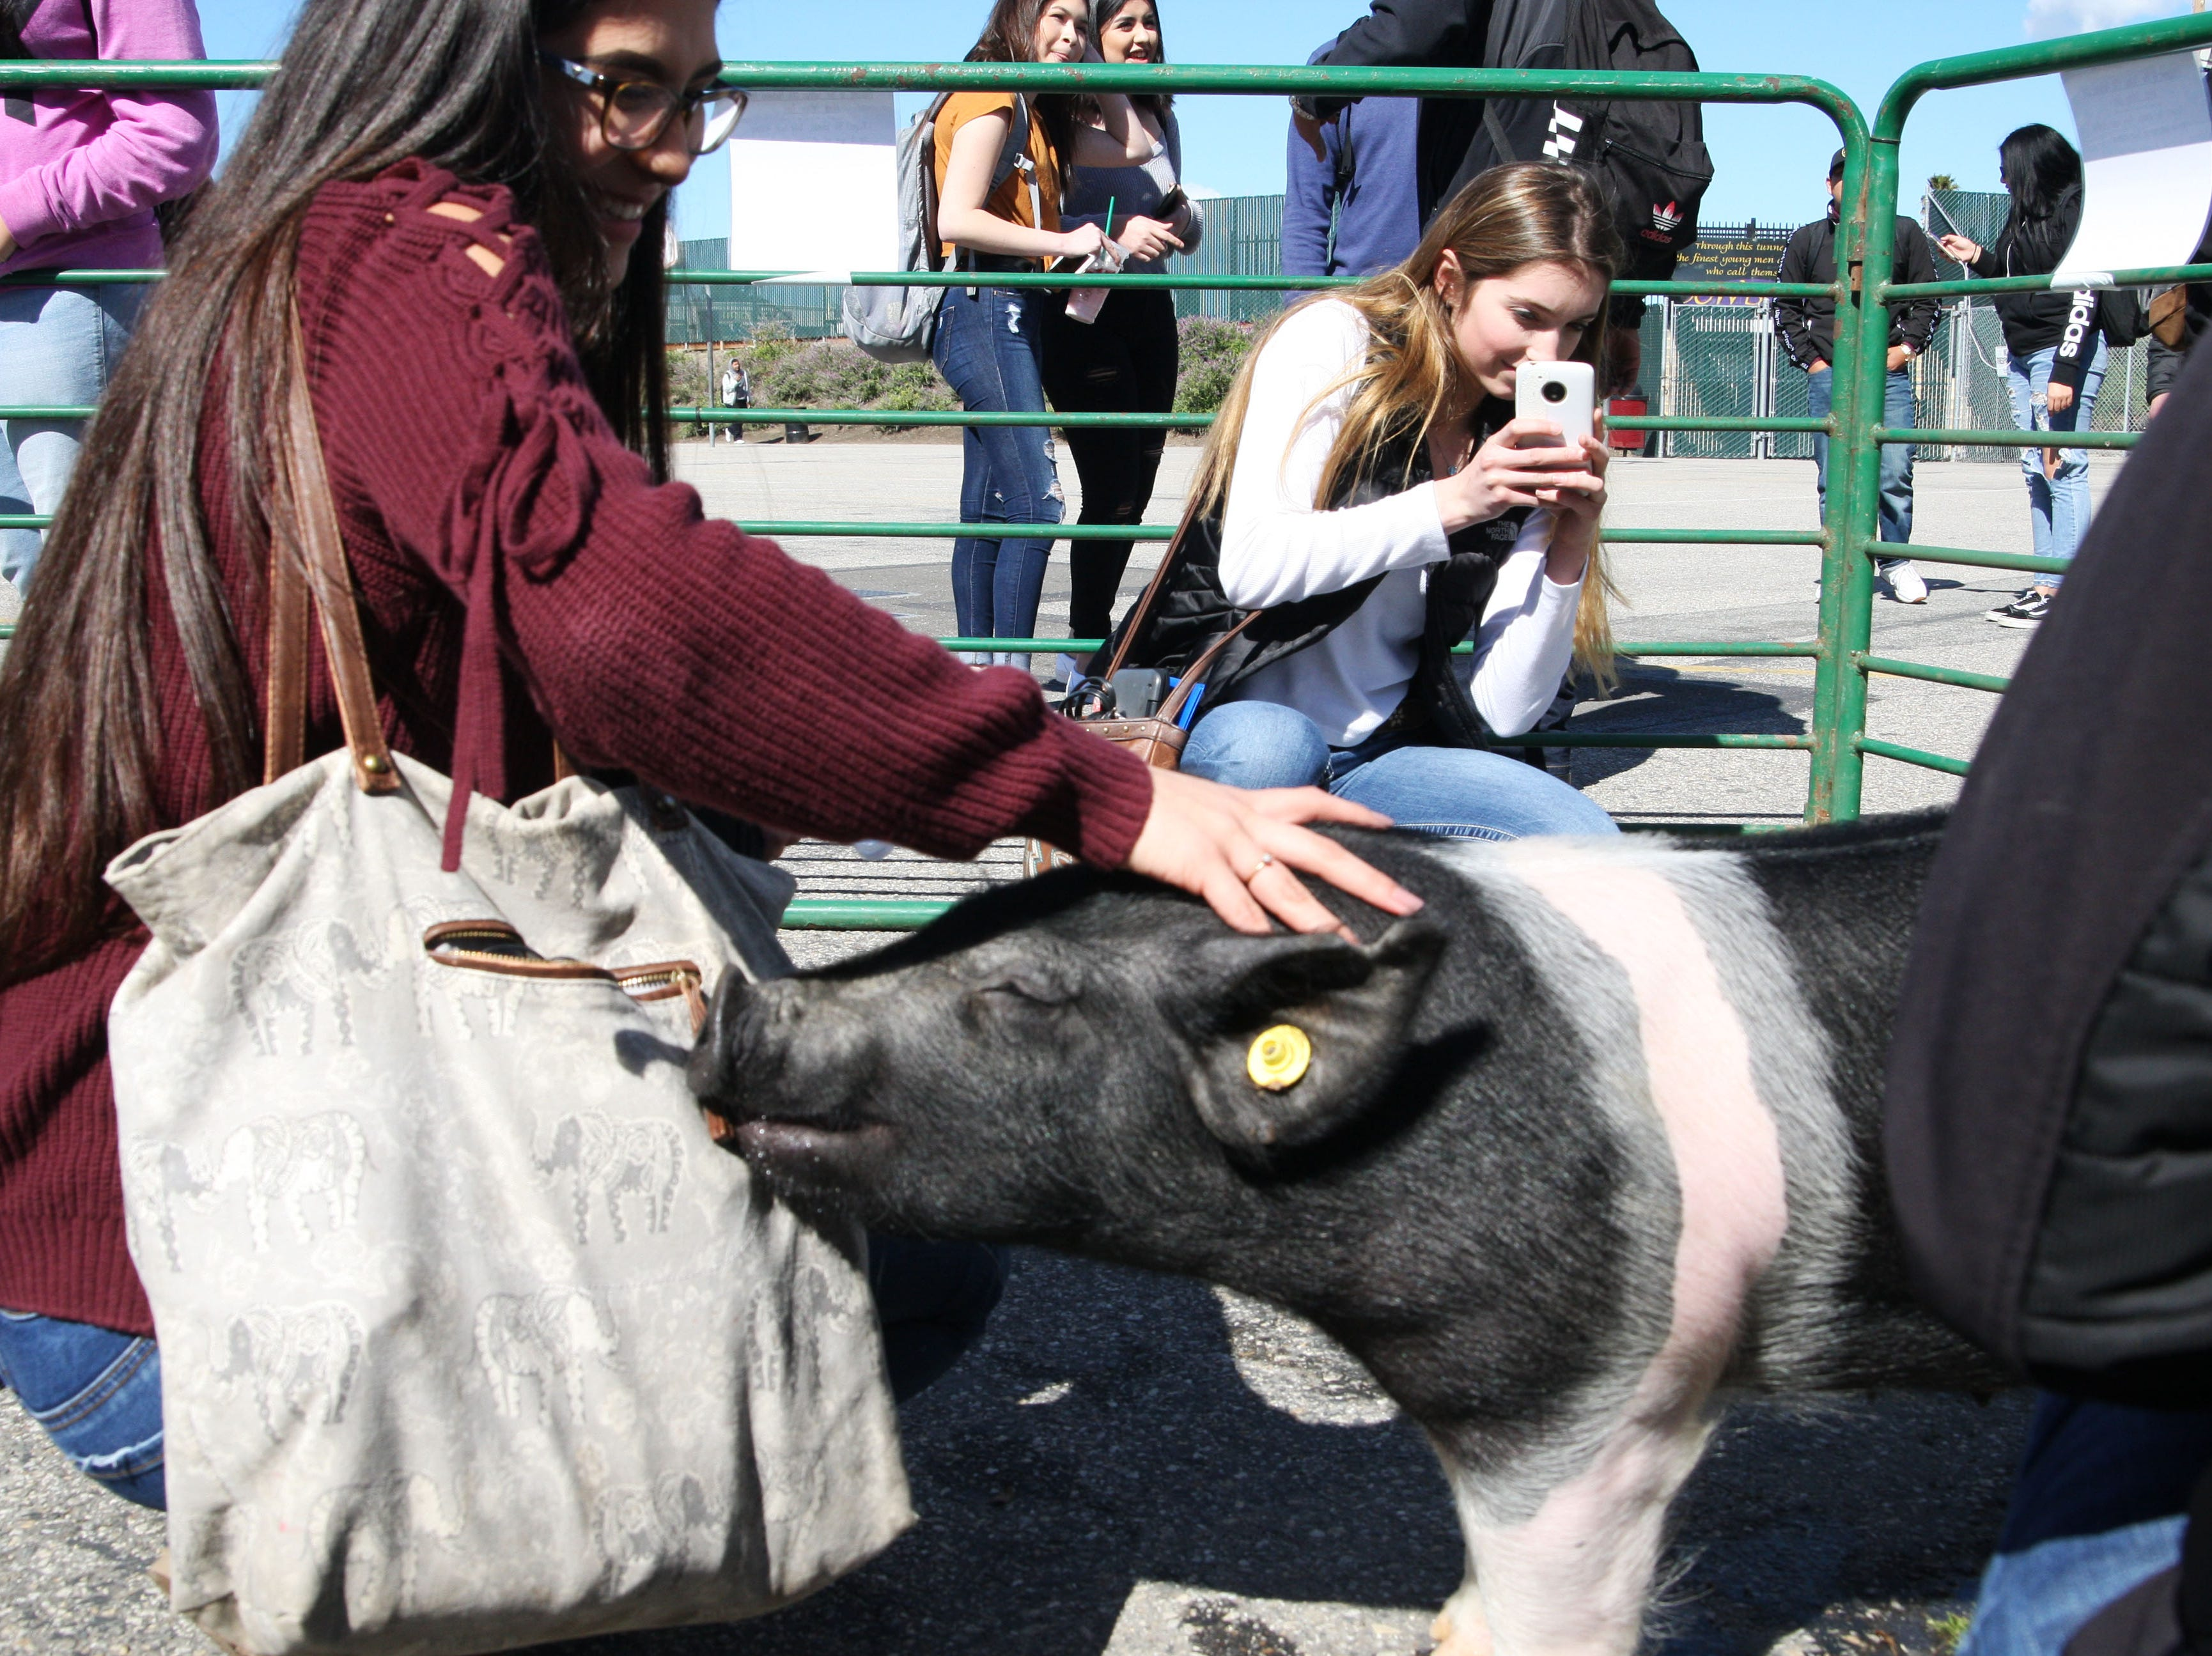 Zola the pig noses at a students bag as her friend records the encounter.